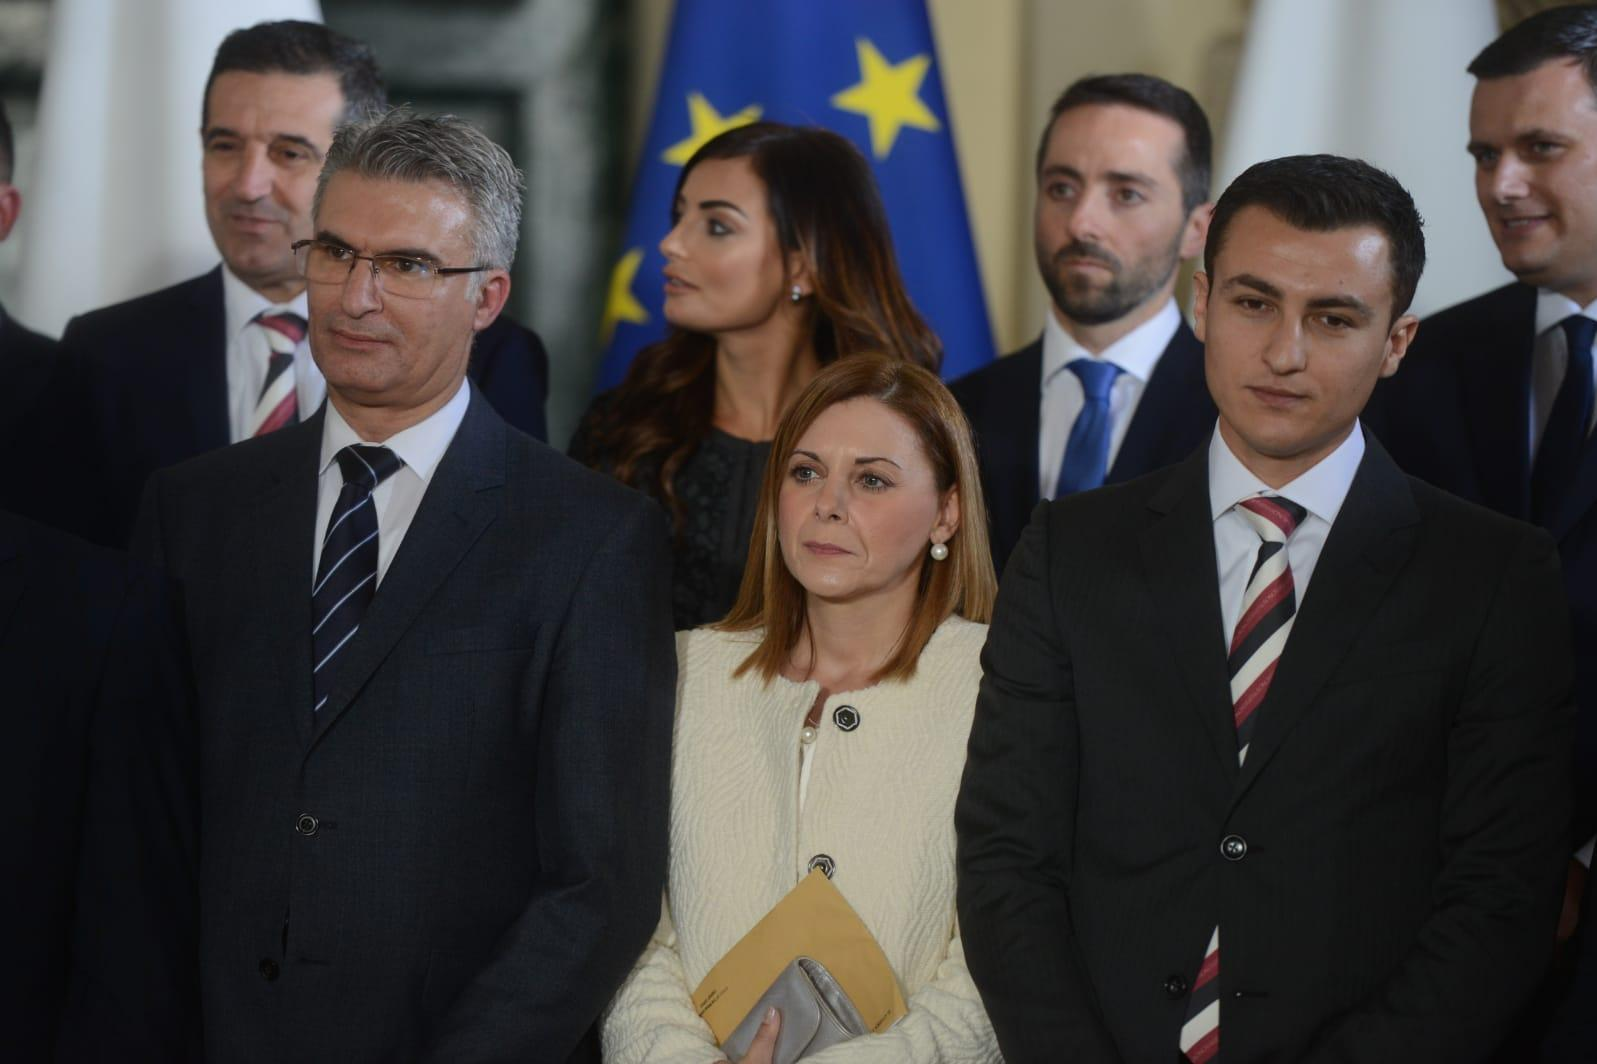 Justyne Caruana, centre, during last week's swearing-in ceremony. Photo: Jonathan Borg